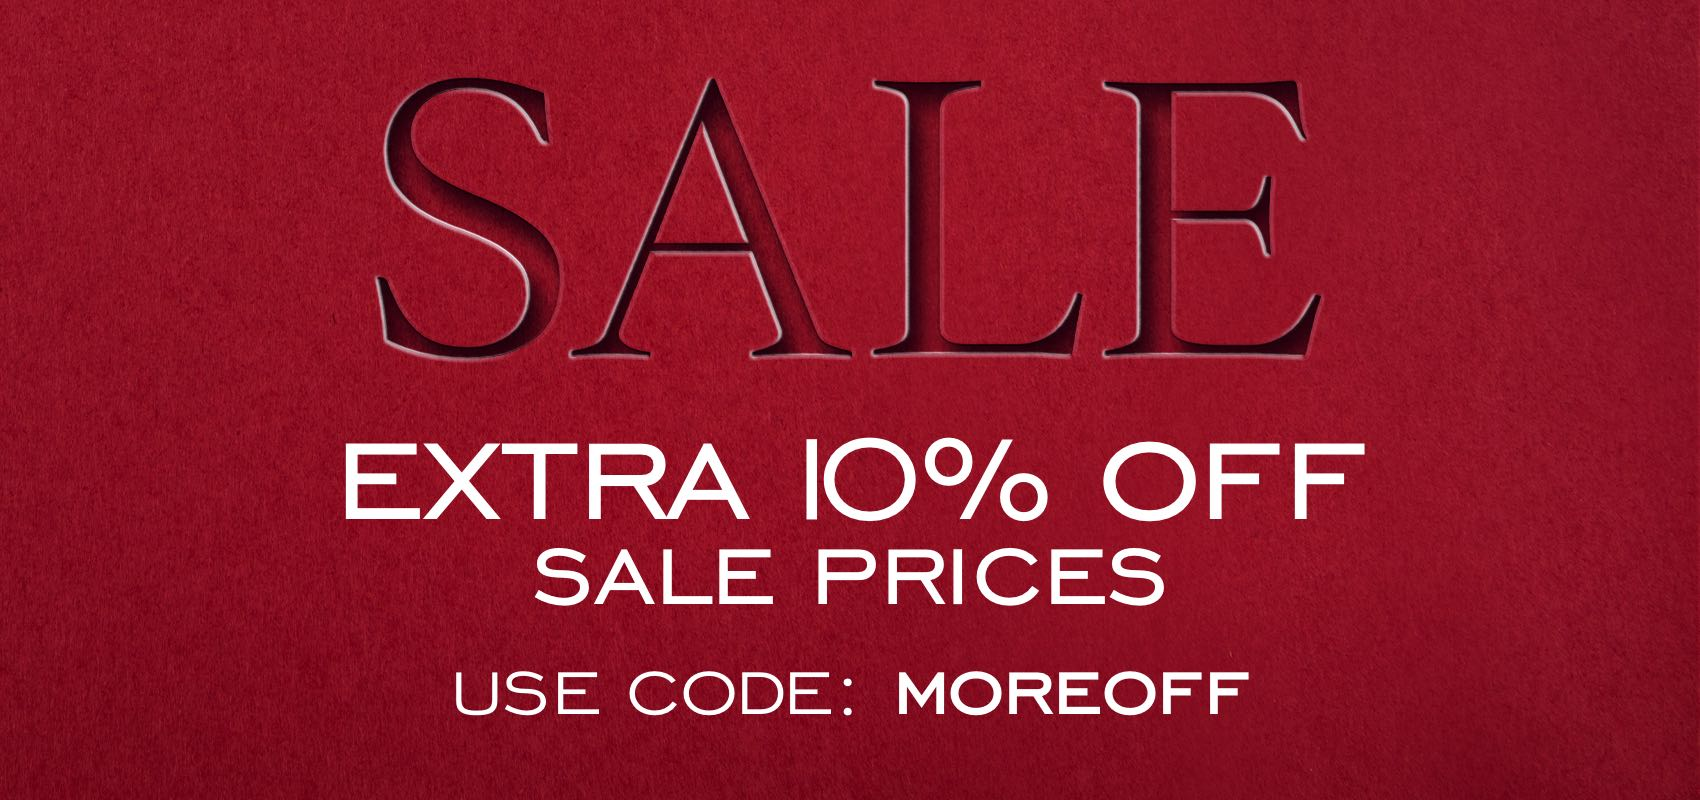 Extra 10% Off sale prices with code MOREOFF